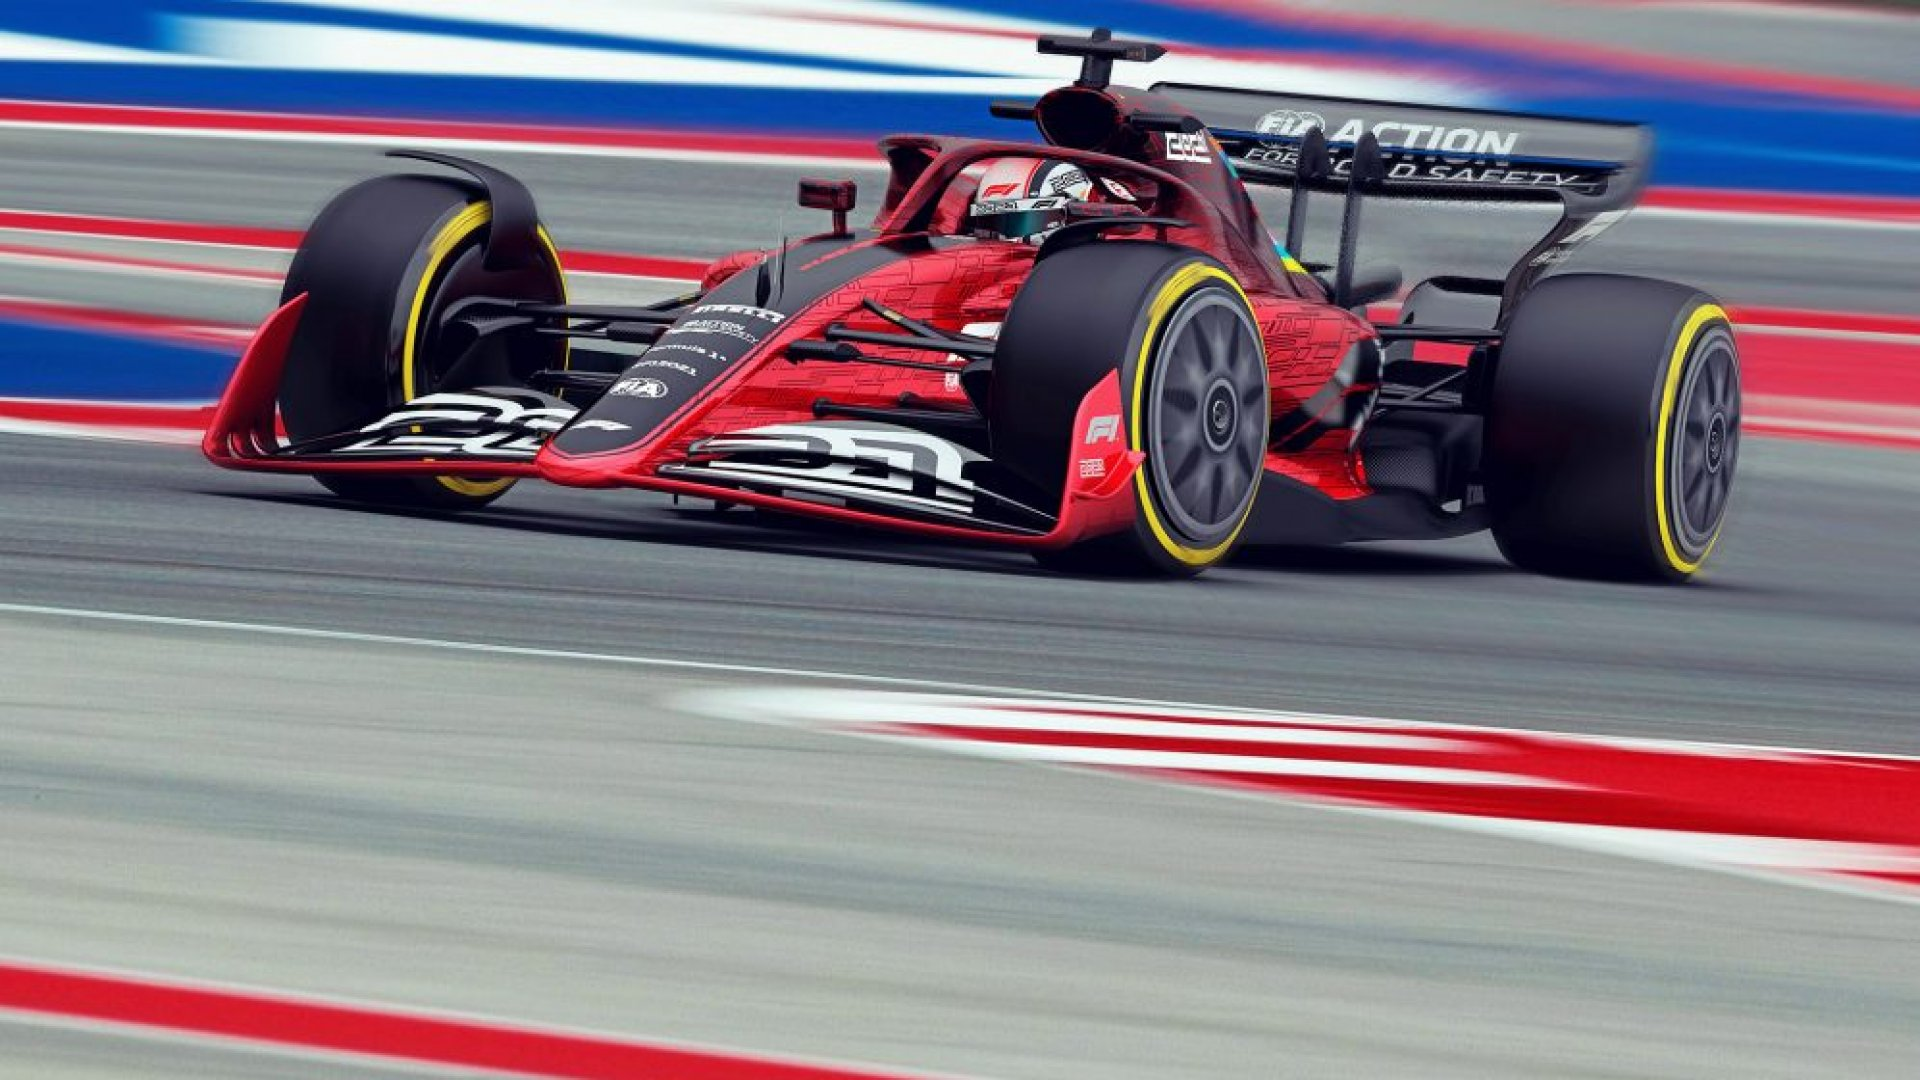 F1 New 2021 Car Images and New Regulations Revealed RaceDepartment 1920x1080